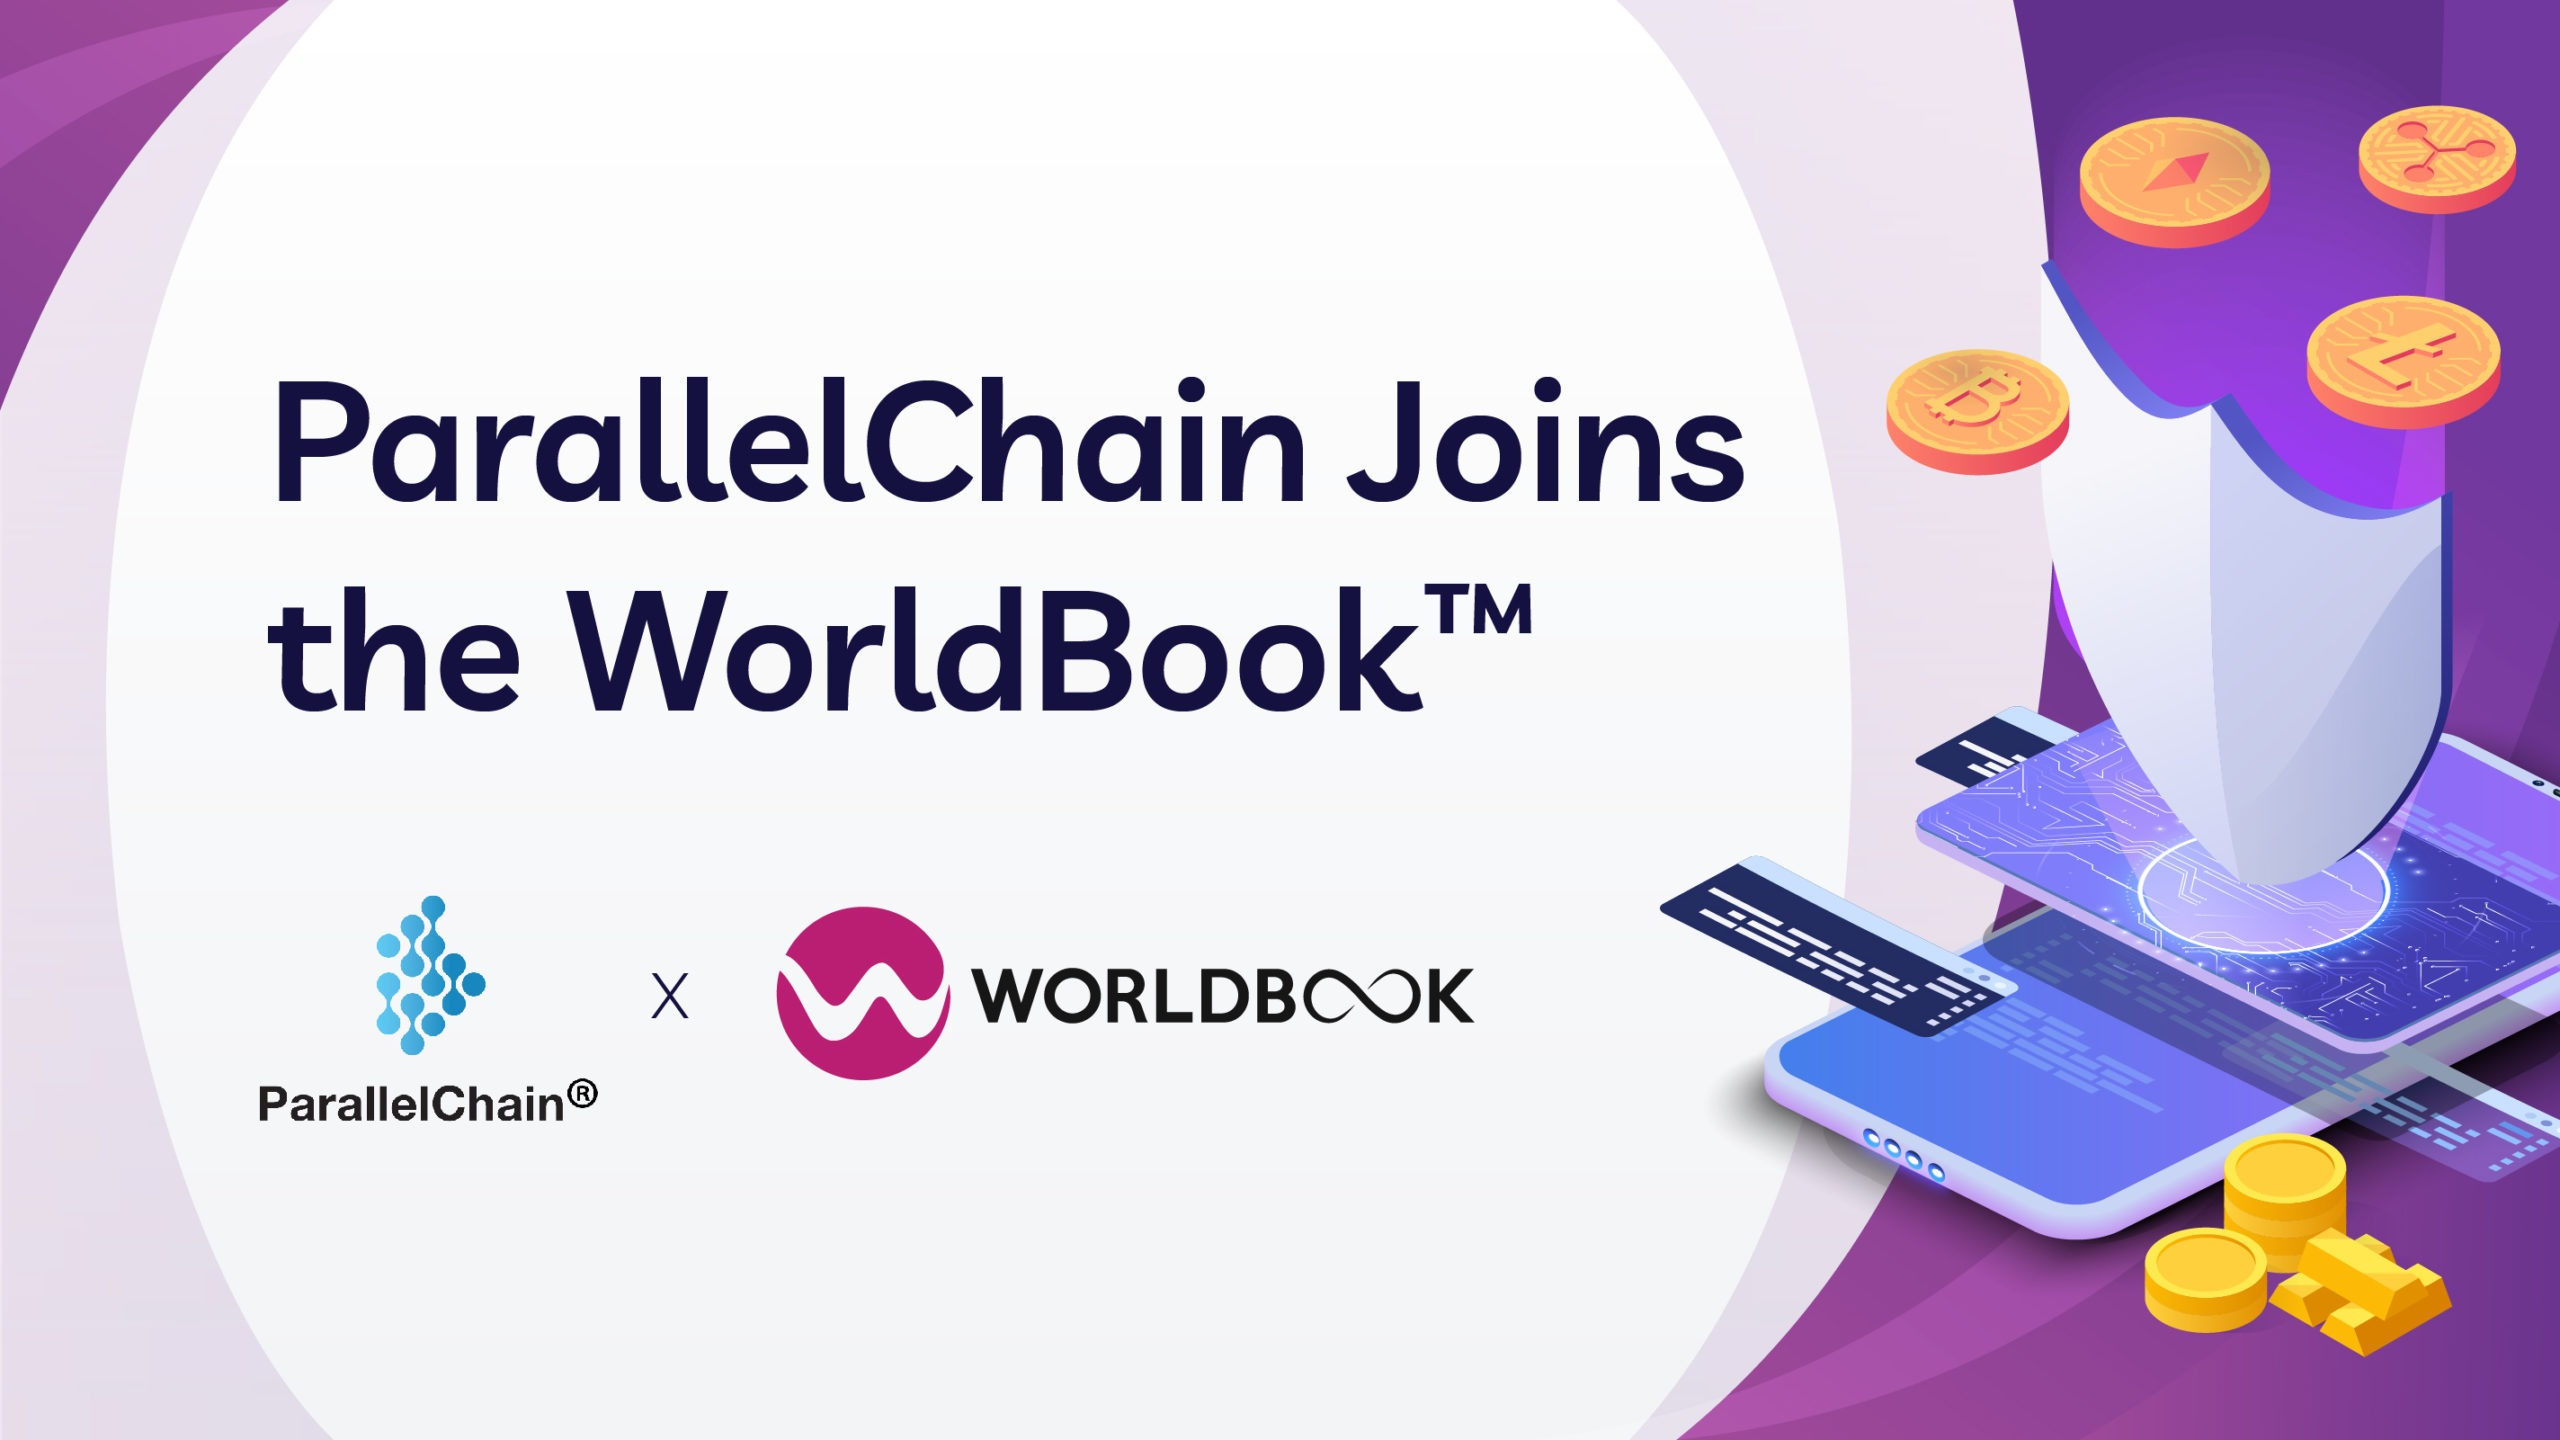 ParallelChain, a Blockchain Wallet Solution Provider, Joins the WorldBook™